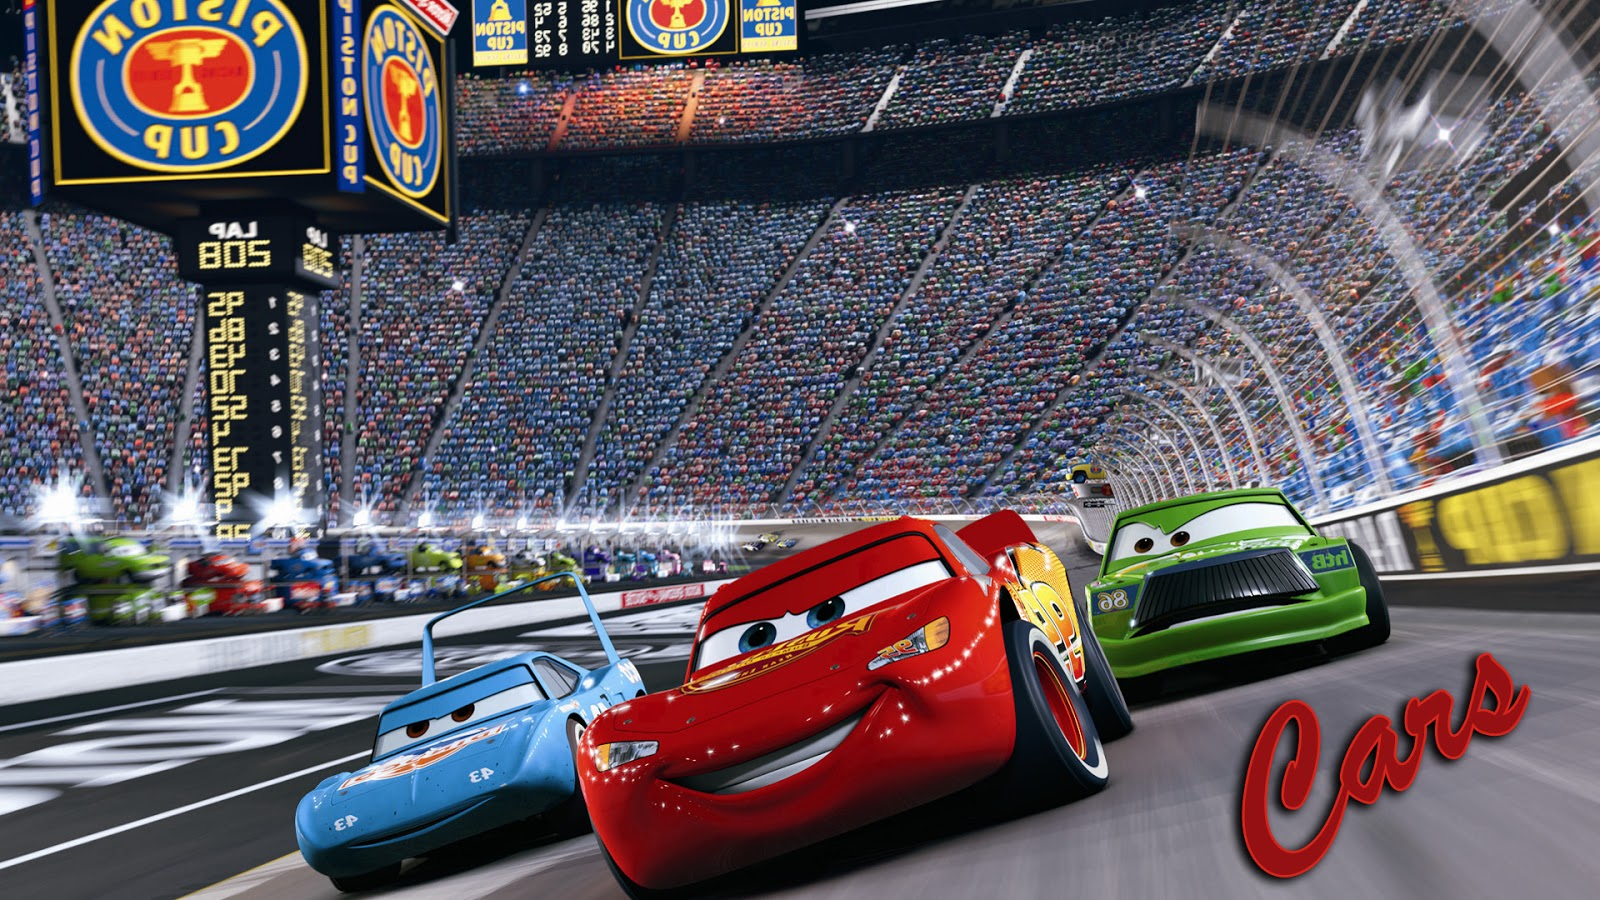 Disney Cars Wallpapers Free Download: HD Wallpapers